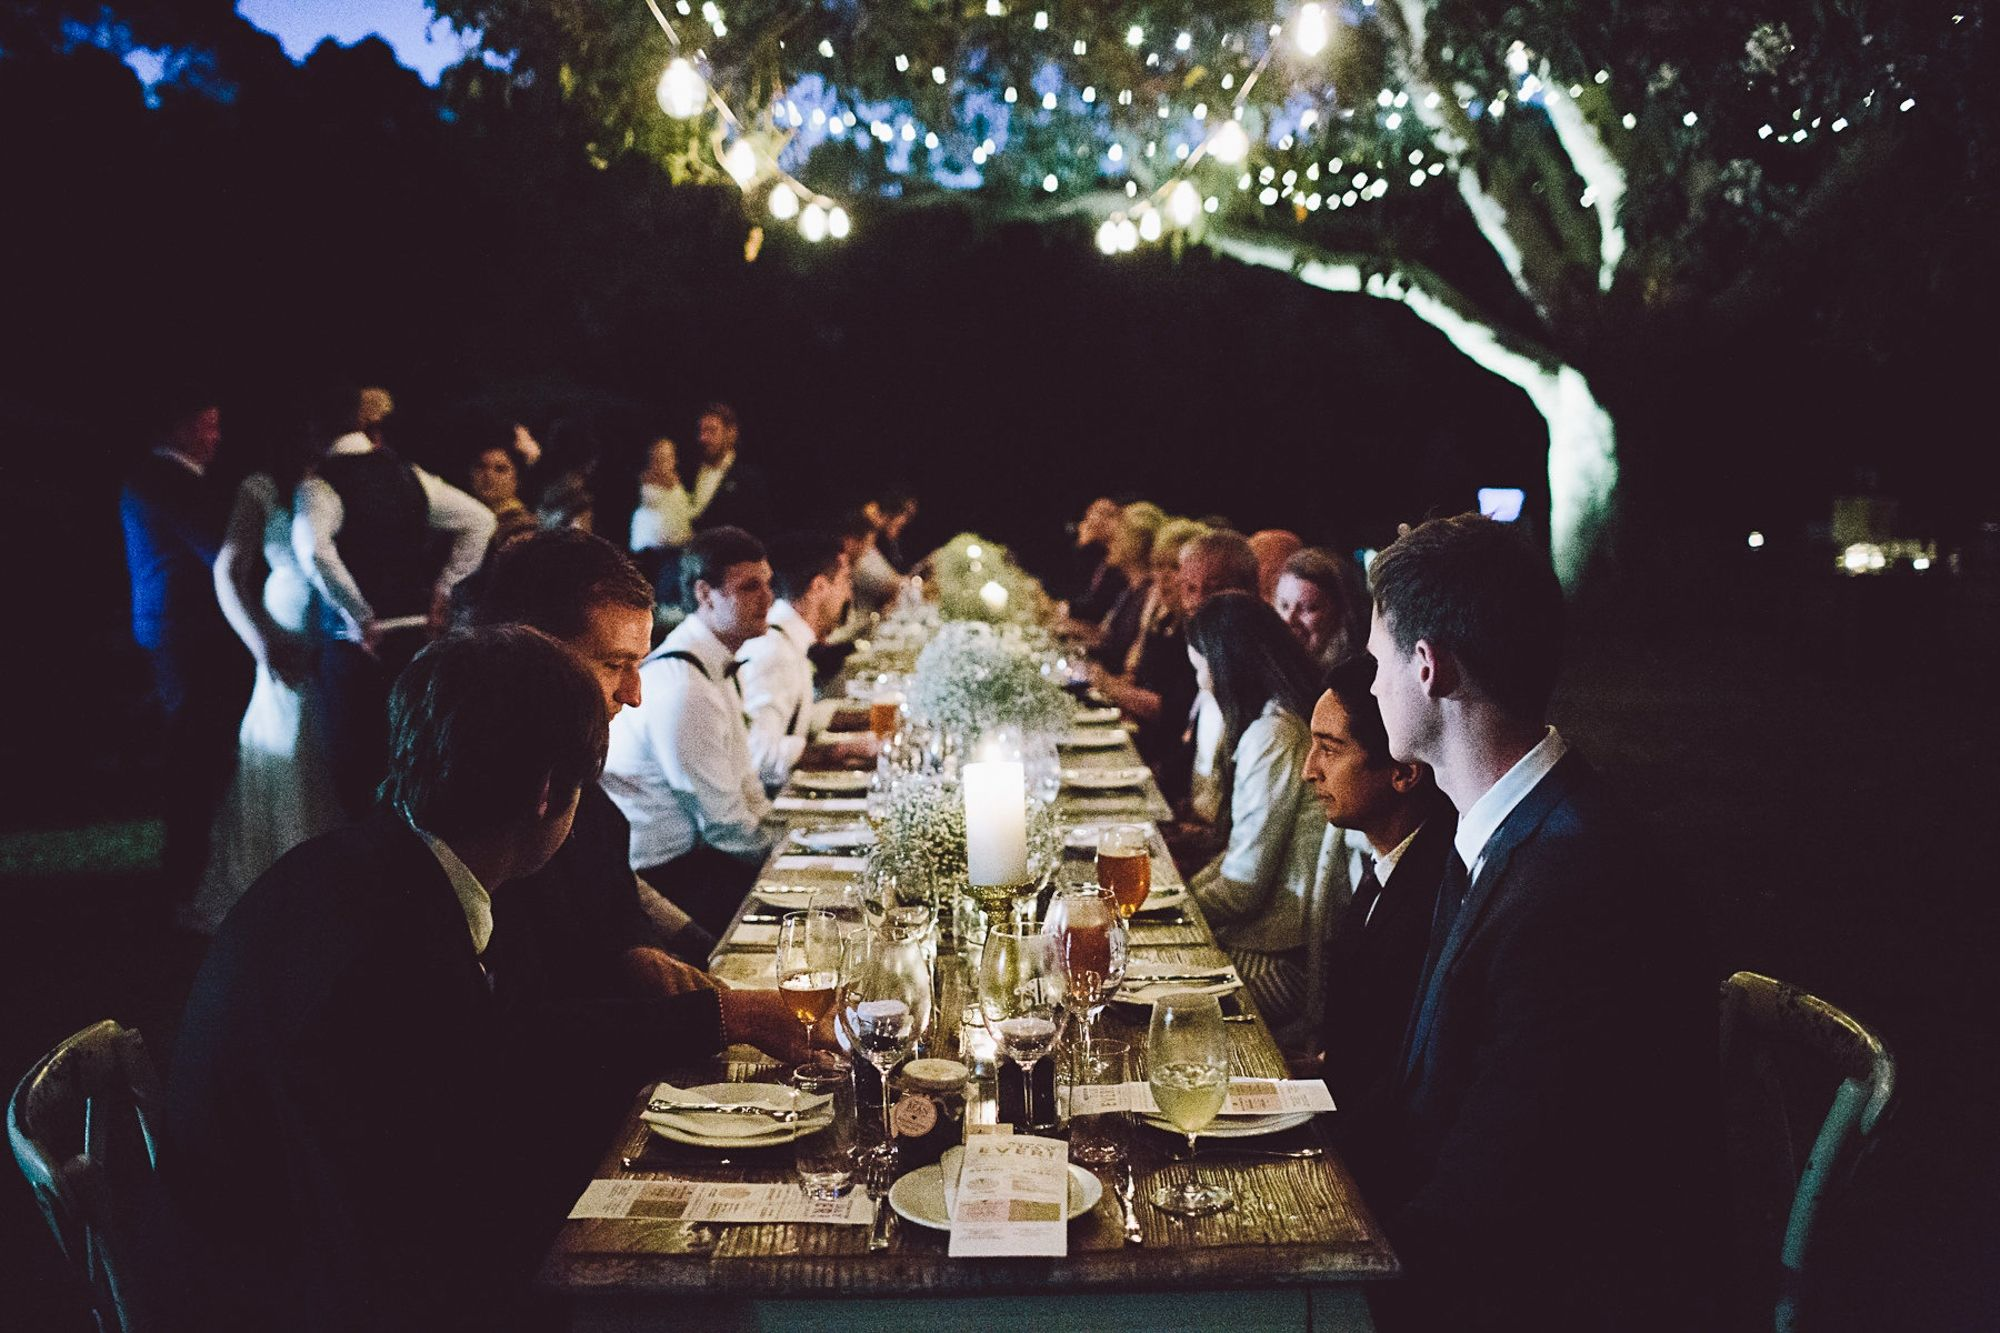 best outdoor wedding venues perth%0A Winery and Fancy Barn Wedding Locations in Australia